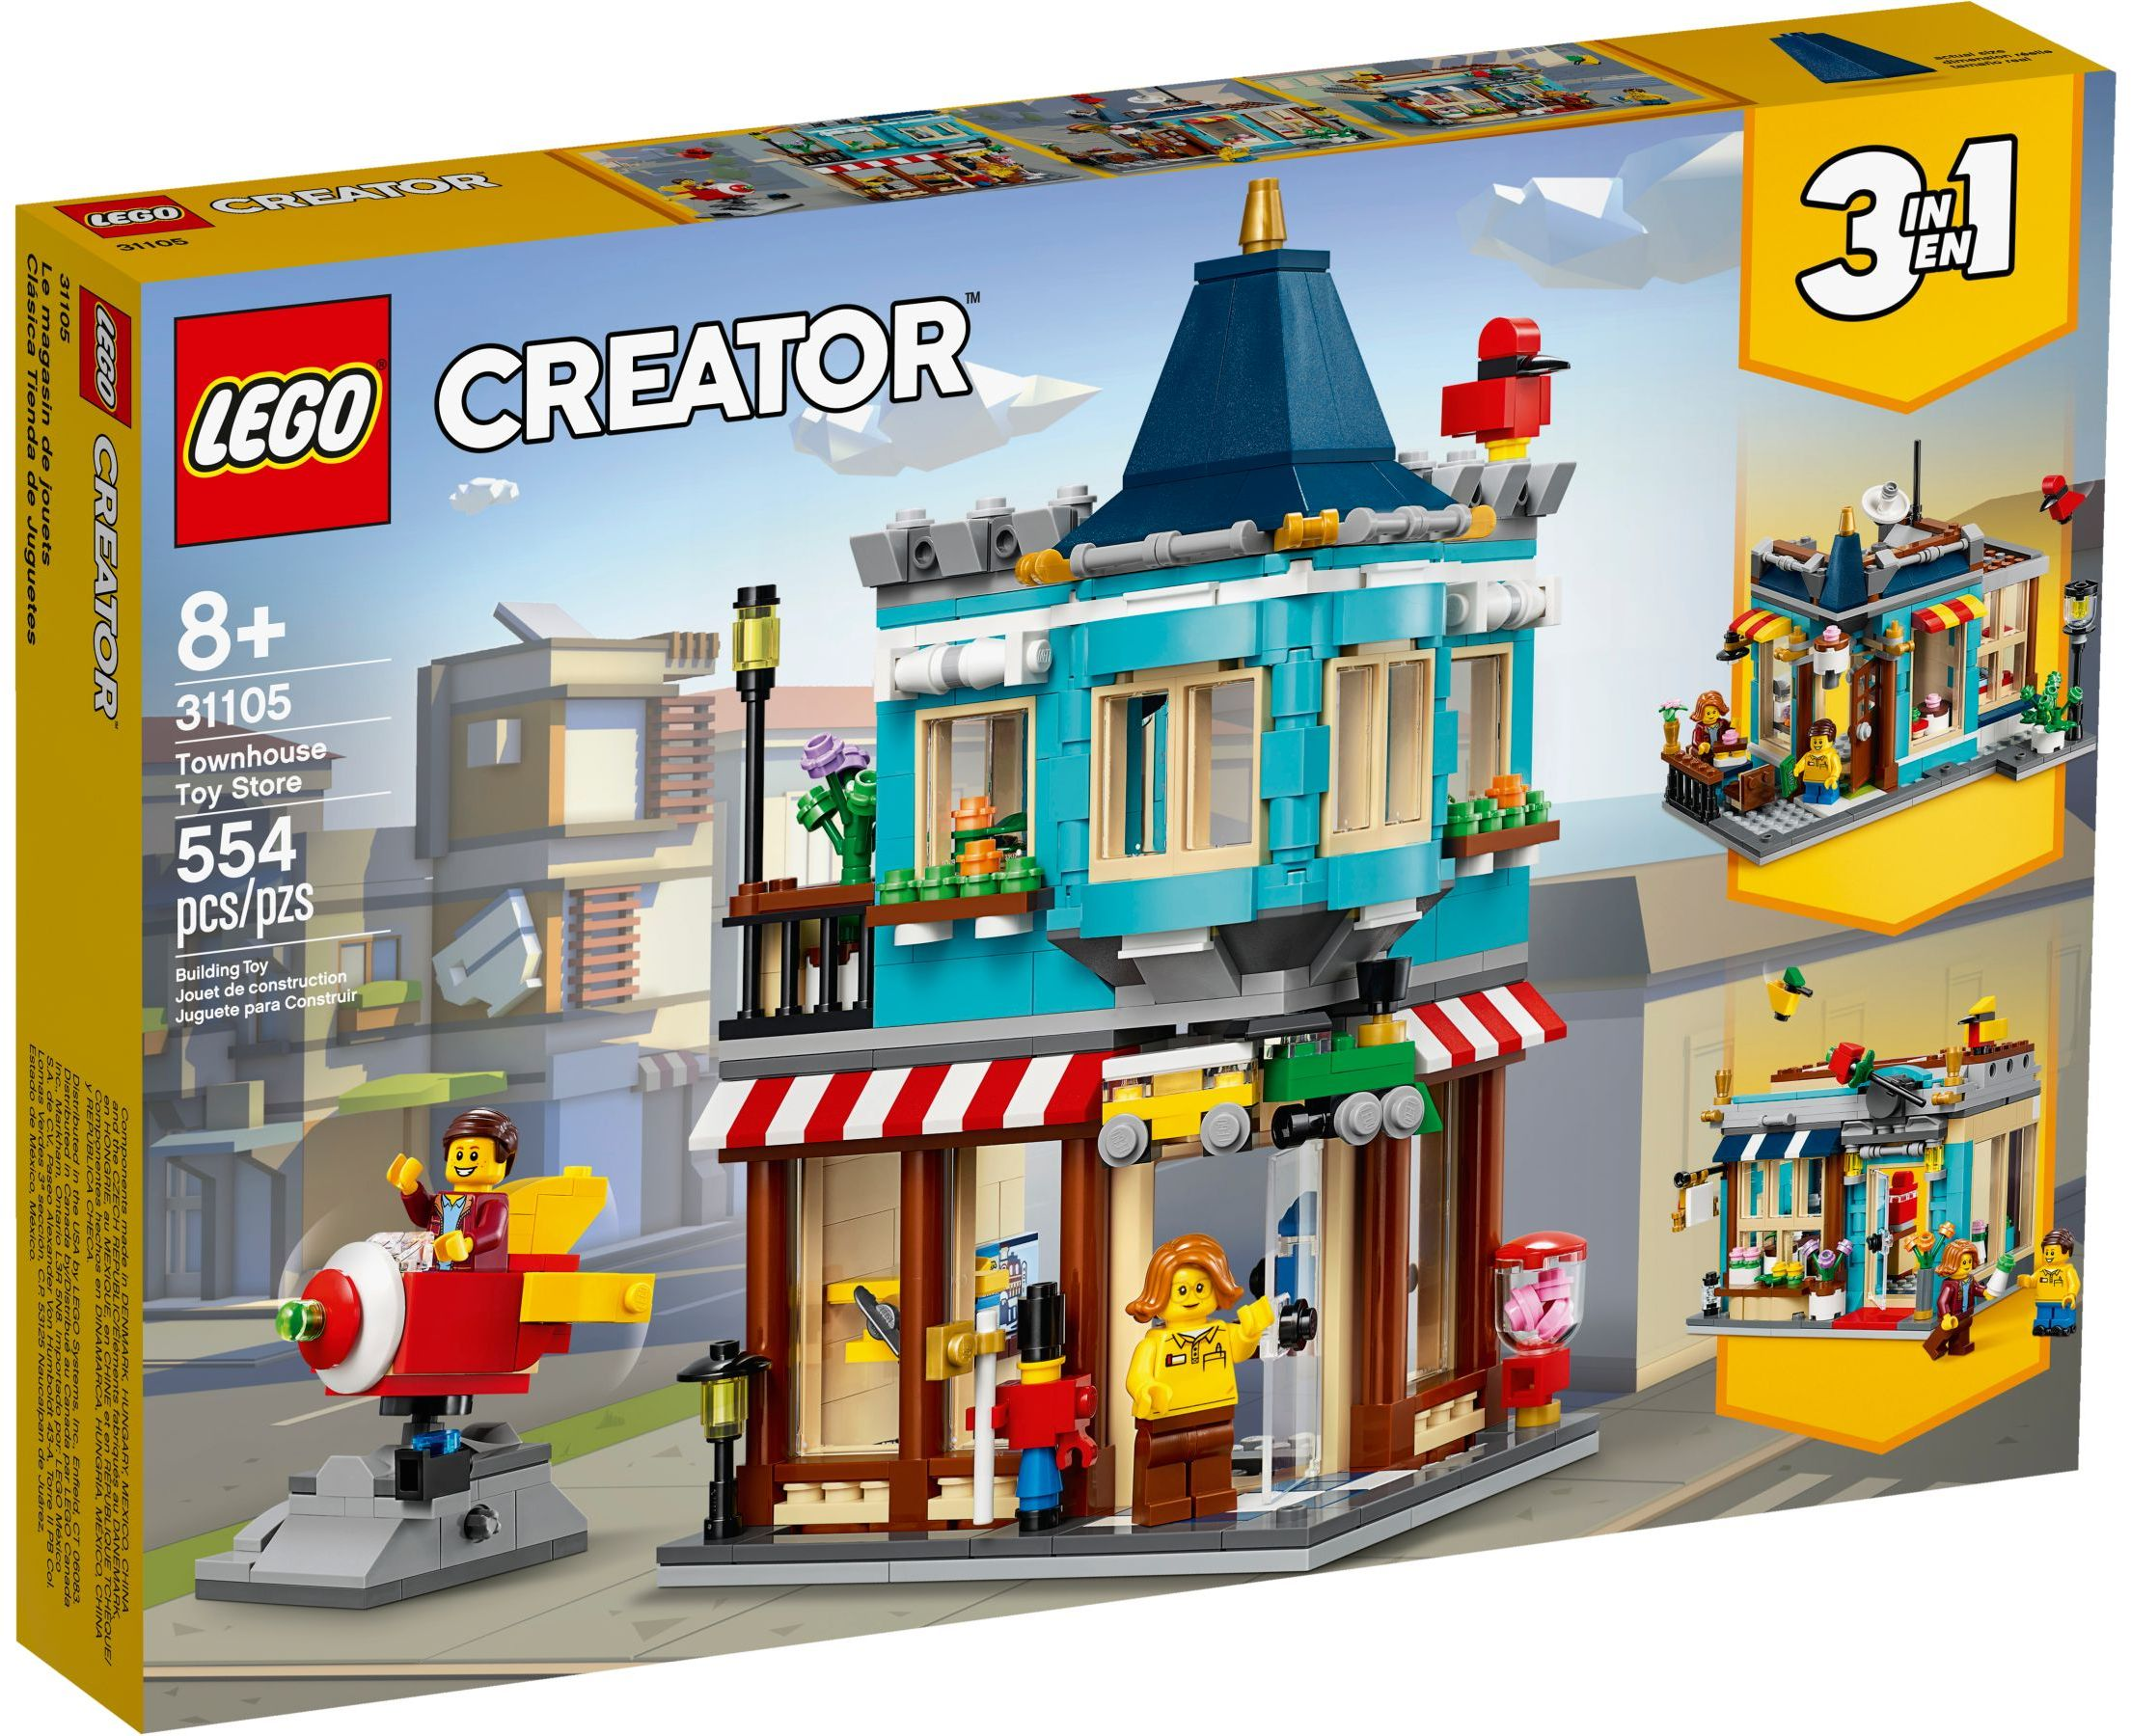 Review 31105 Townhouse Toy Store Brickset Lego Set Guide And Database